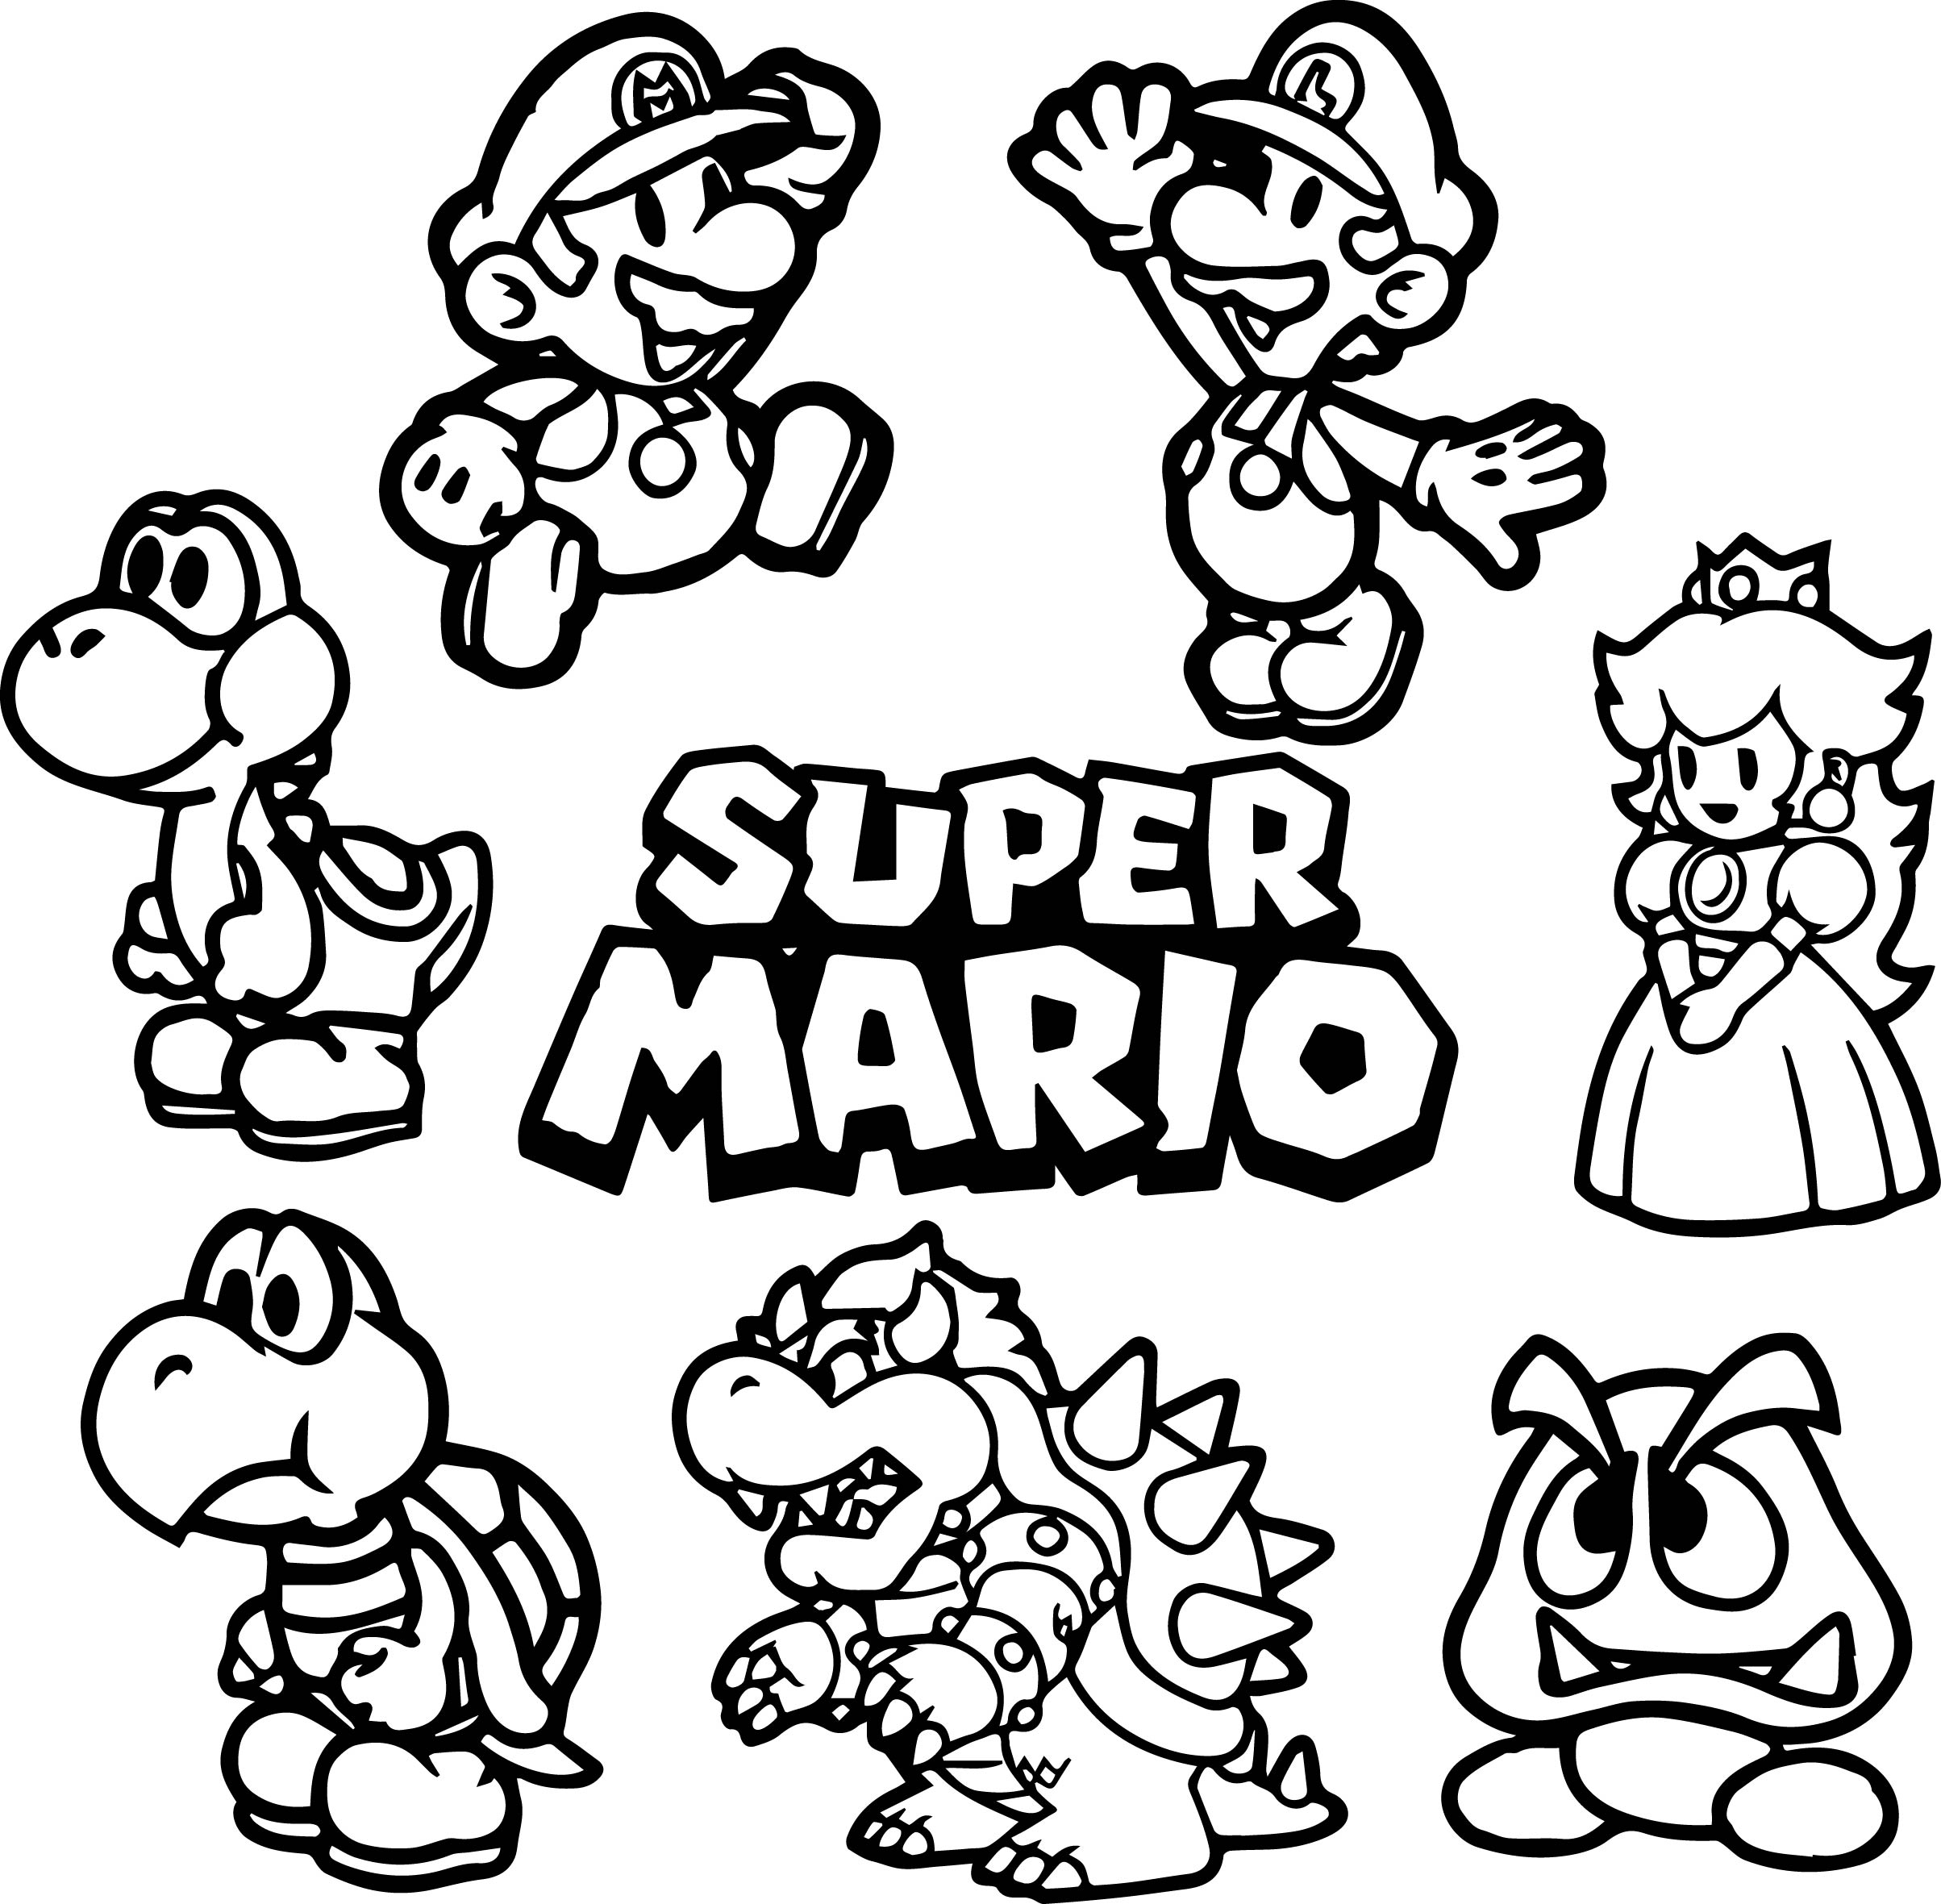 mario brothers coloring pages - mario coloring pages